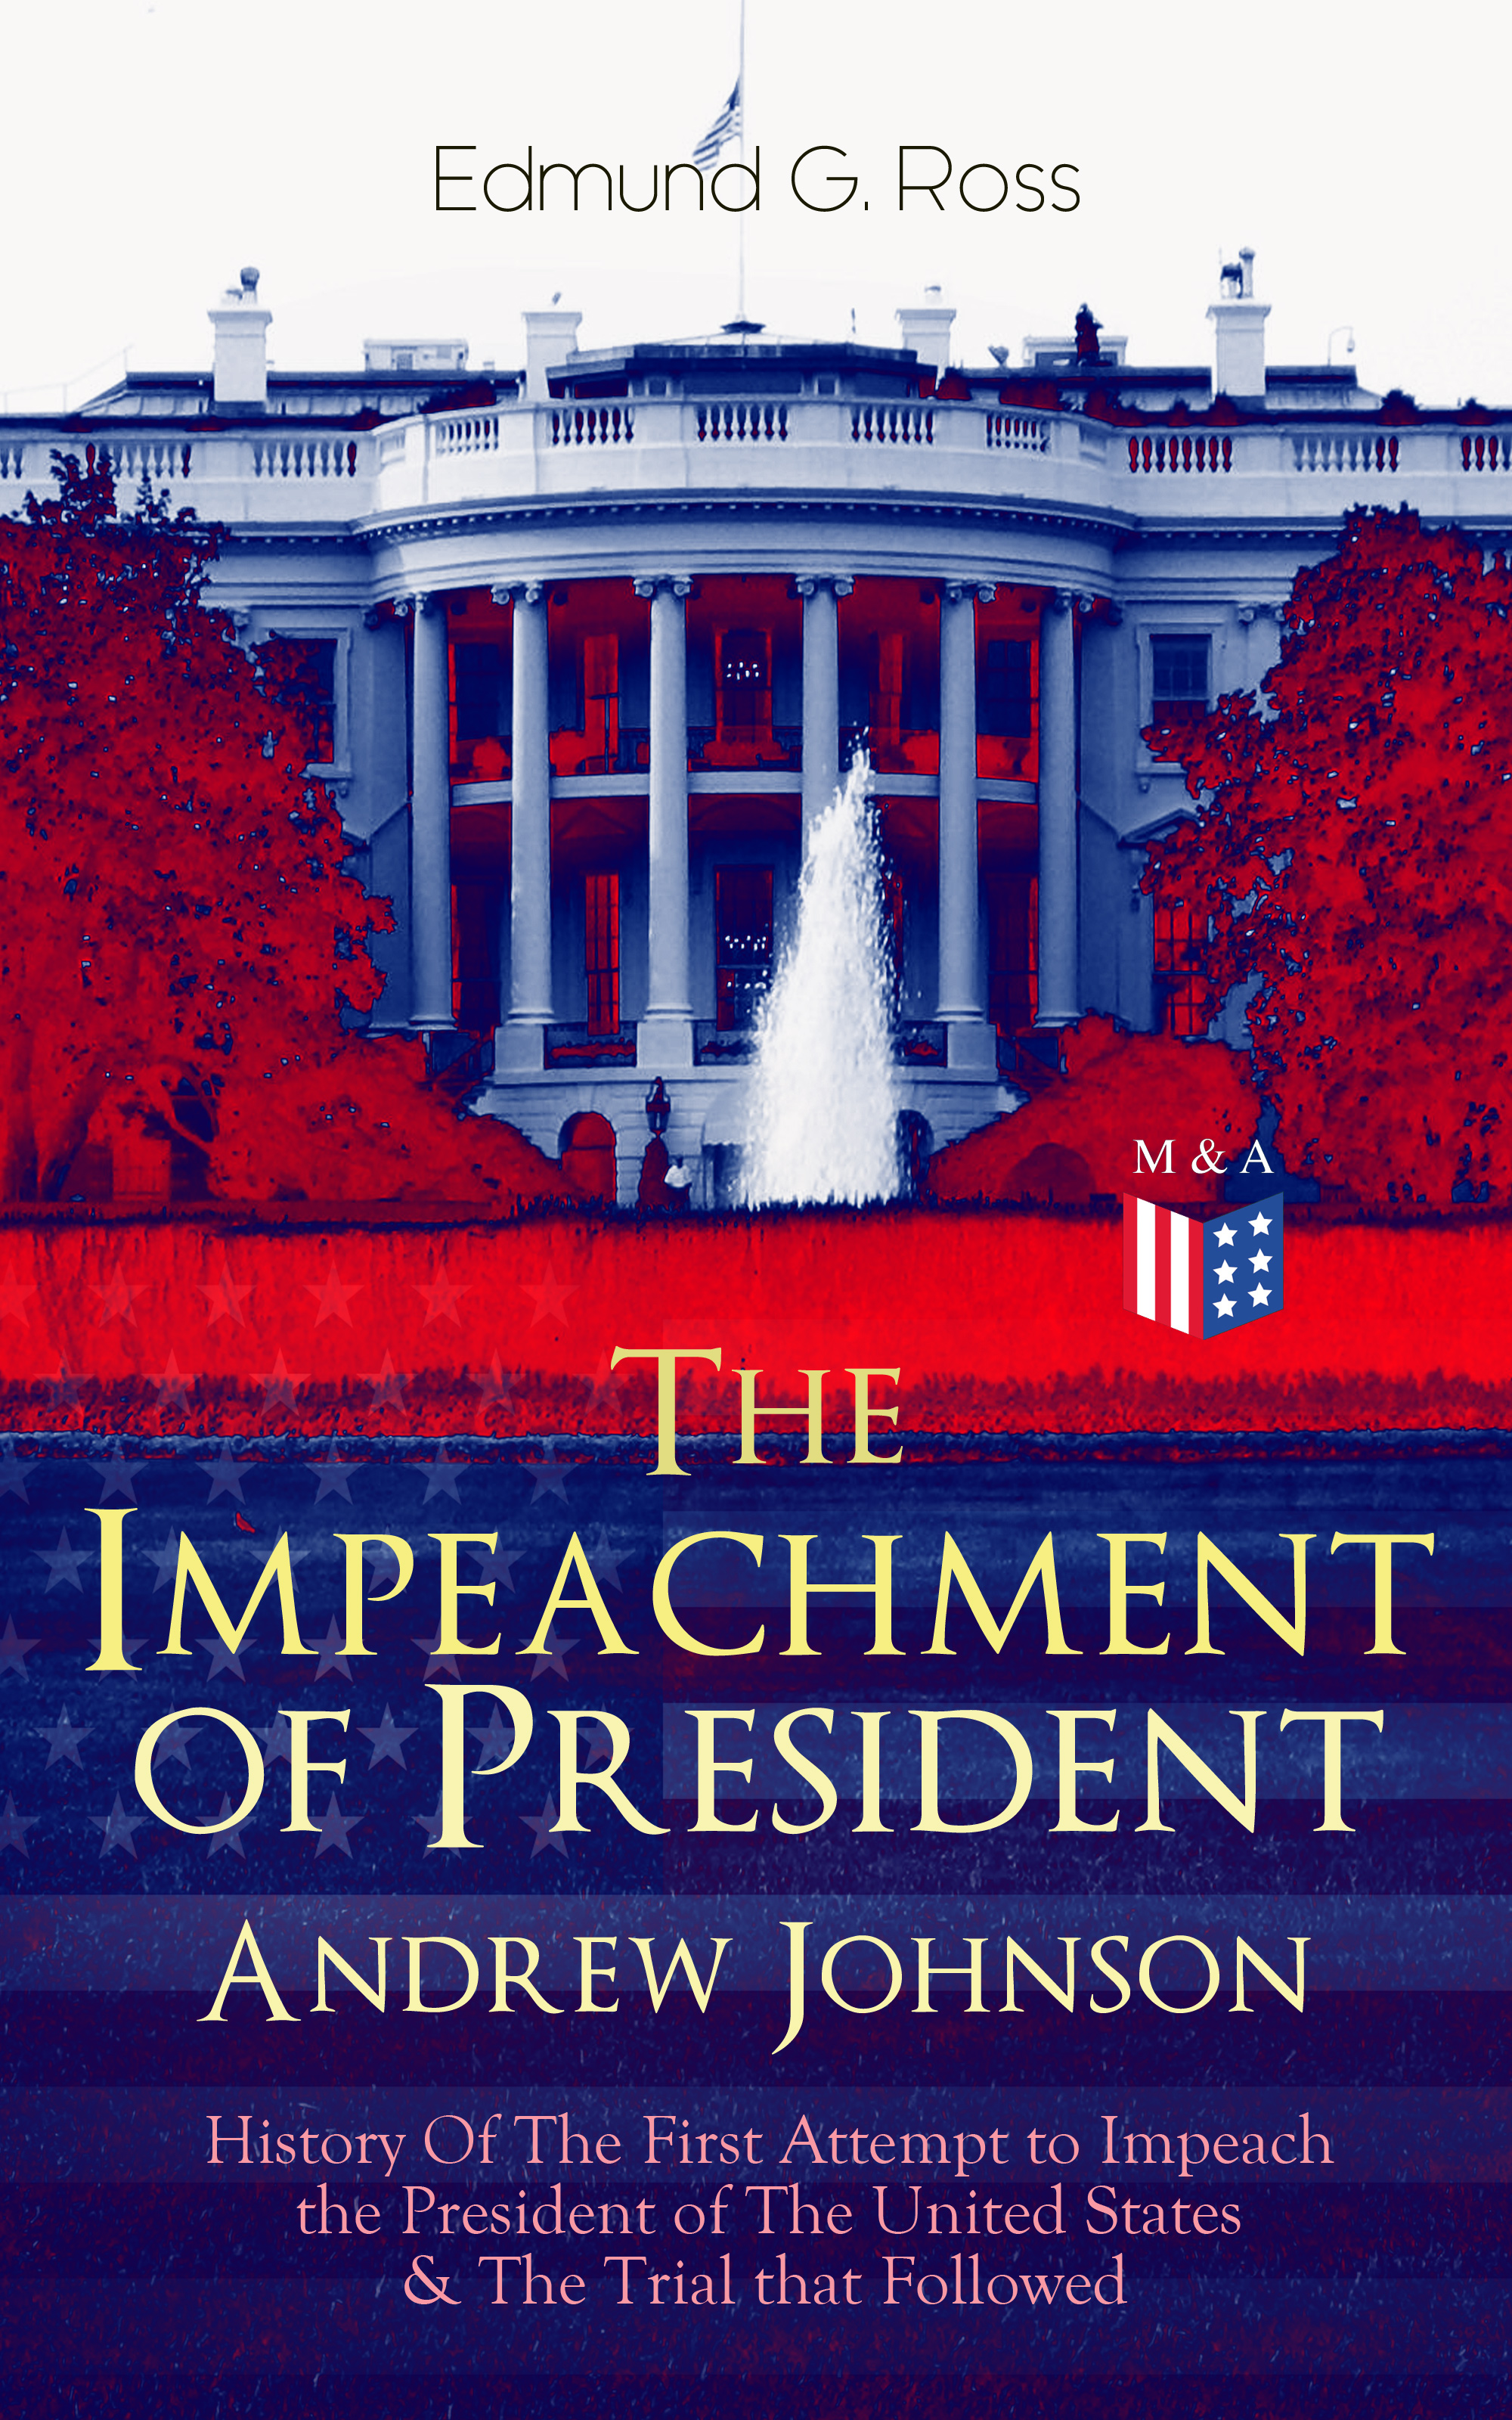 Edmund G. Ross The Impeachment of President Andrew Johnson – History Of The First Attempt to Impeach the President of The United States & The Trial that Followed o j anderson the hour of trial